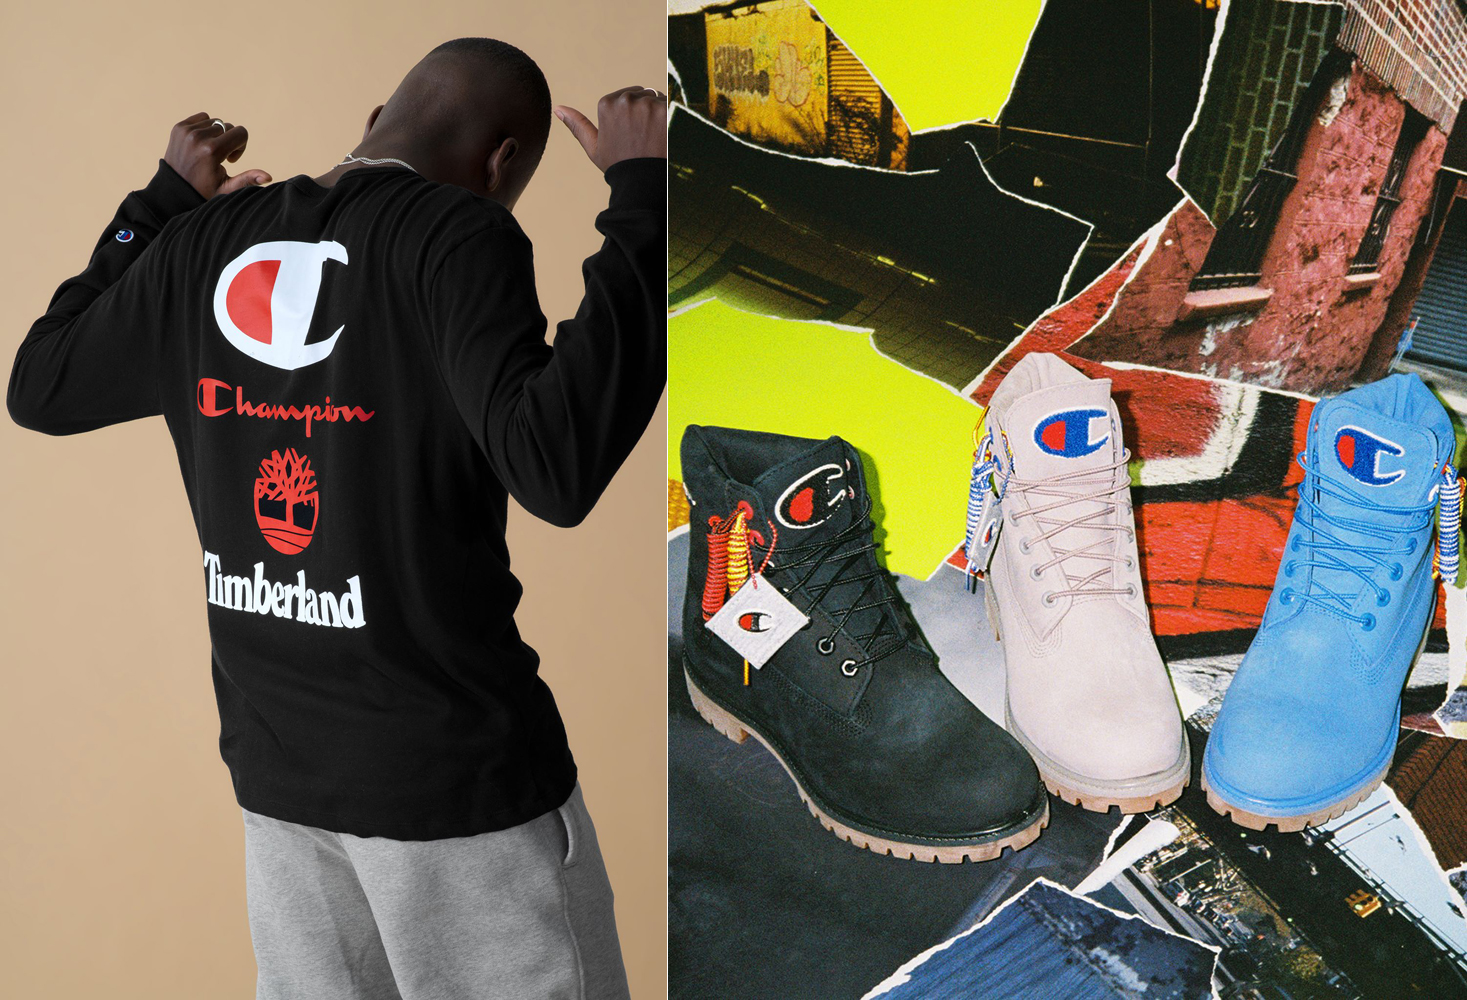 low priced discount shop sale online Champion Timberland Boots and Tee Shirts | SneakerFits.com